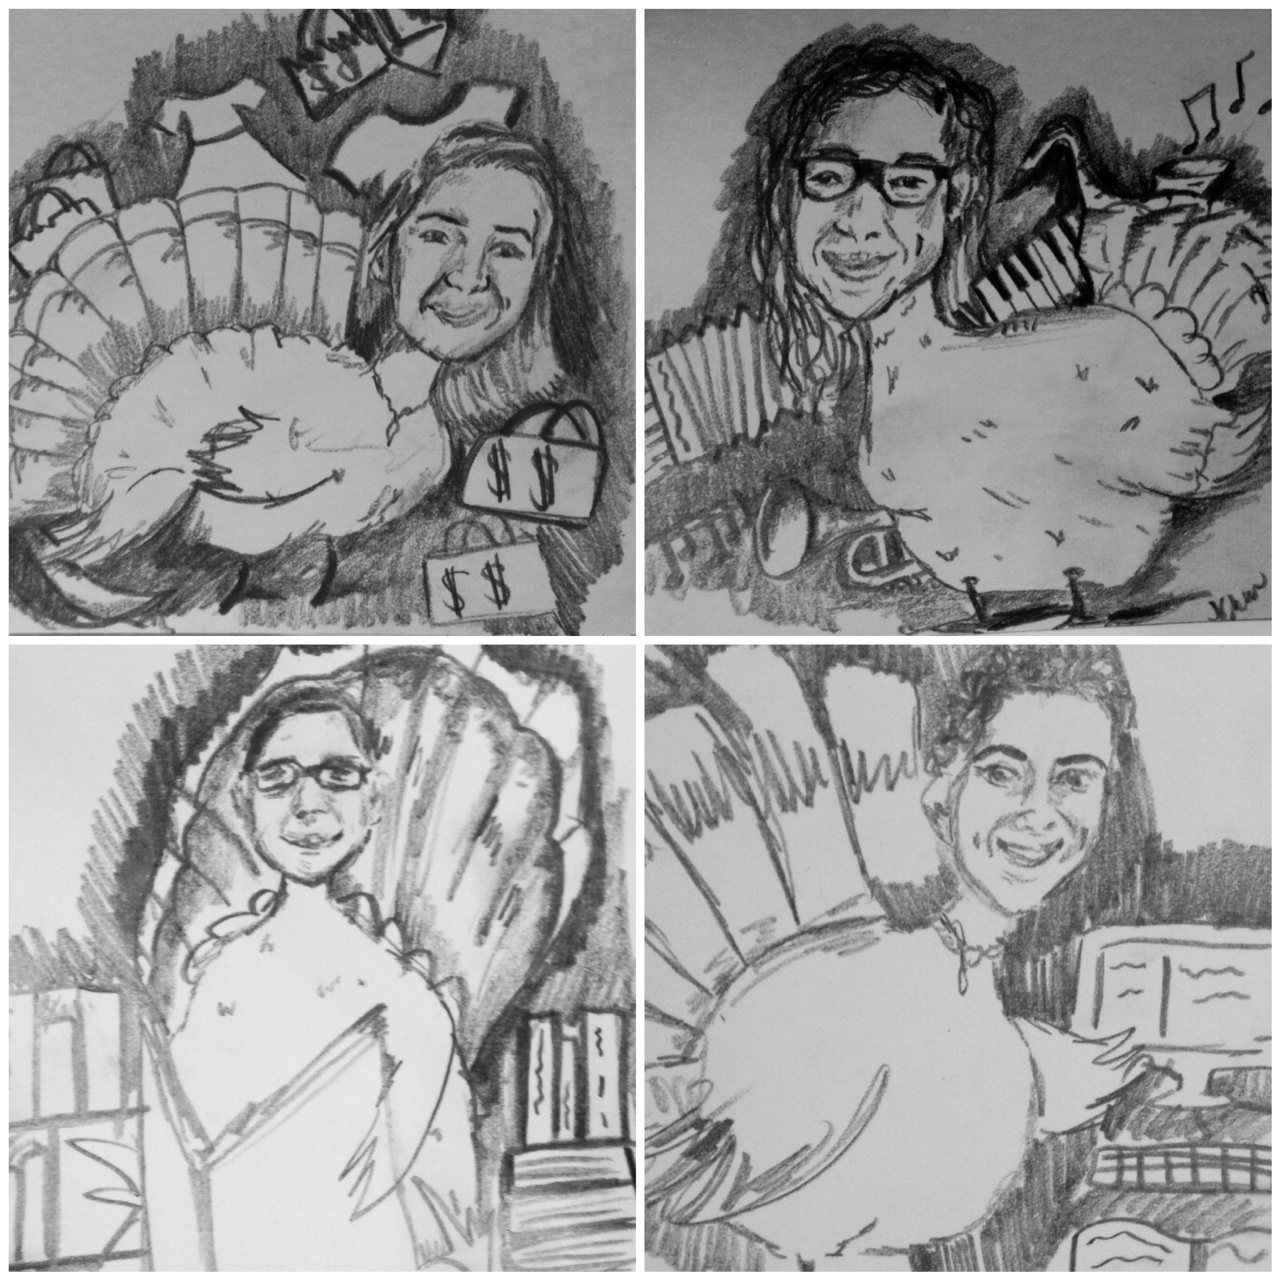 Family as turkeys, caricature illustration